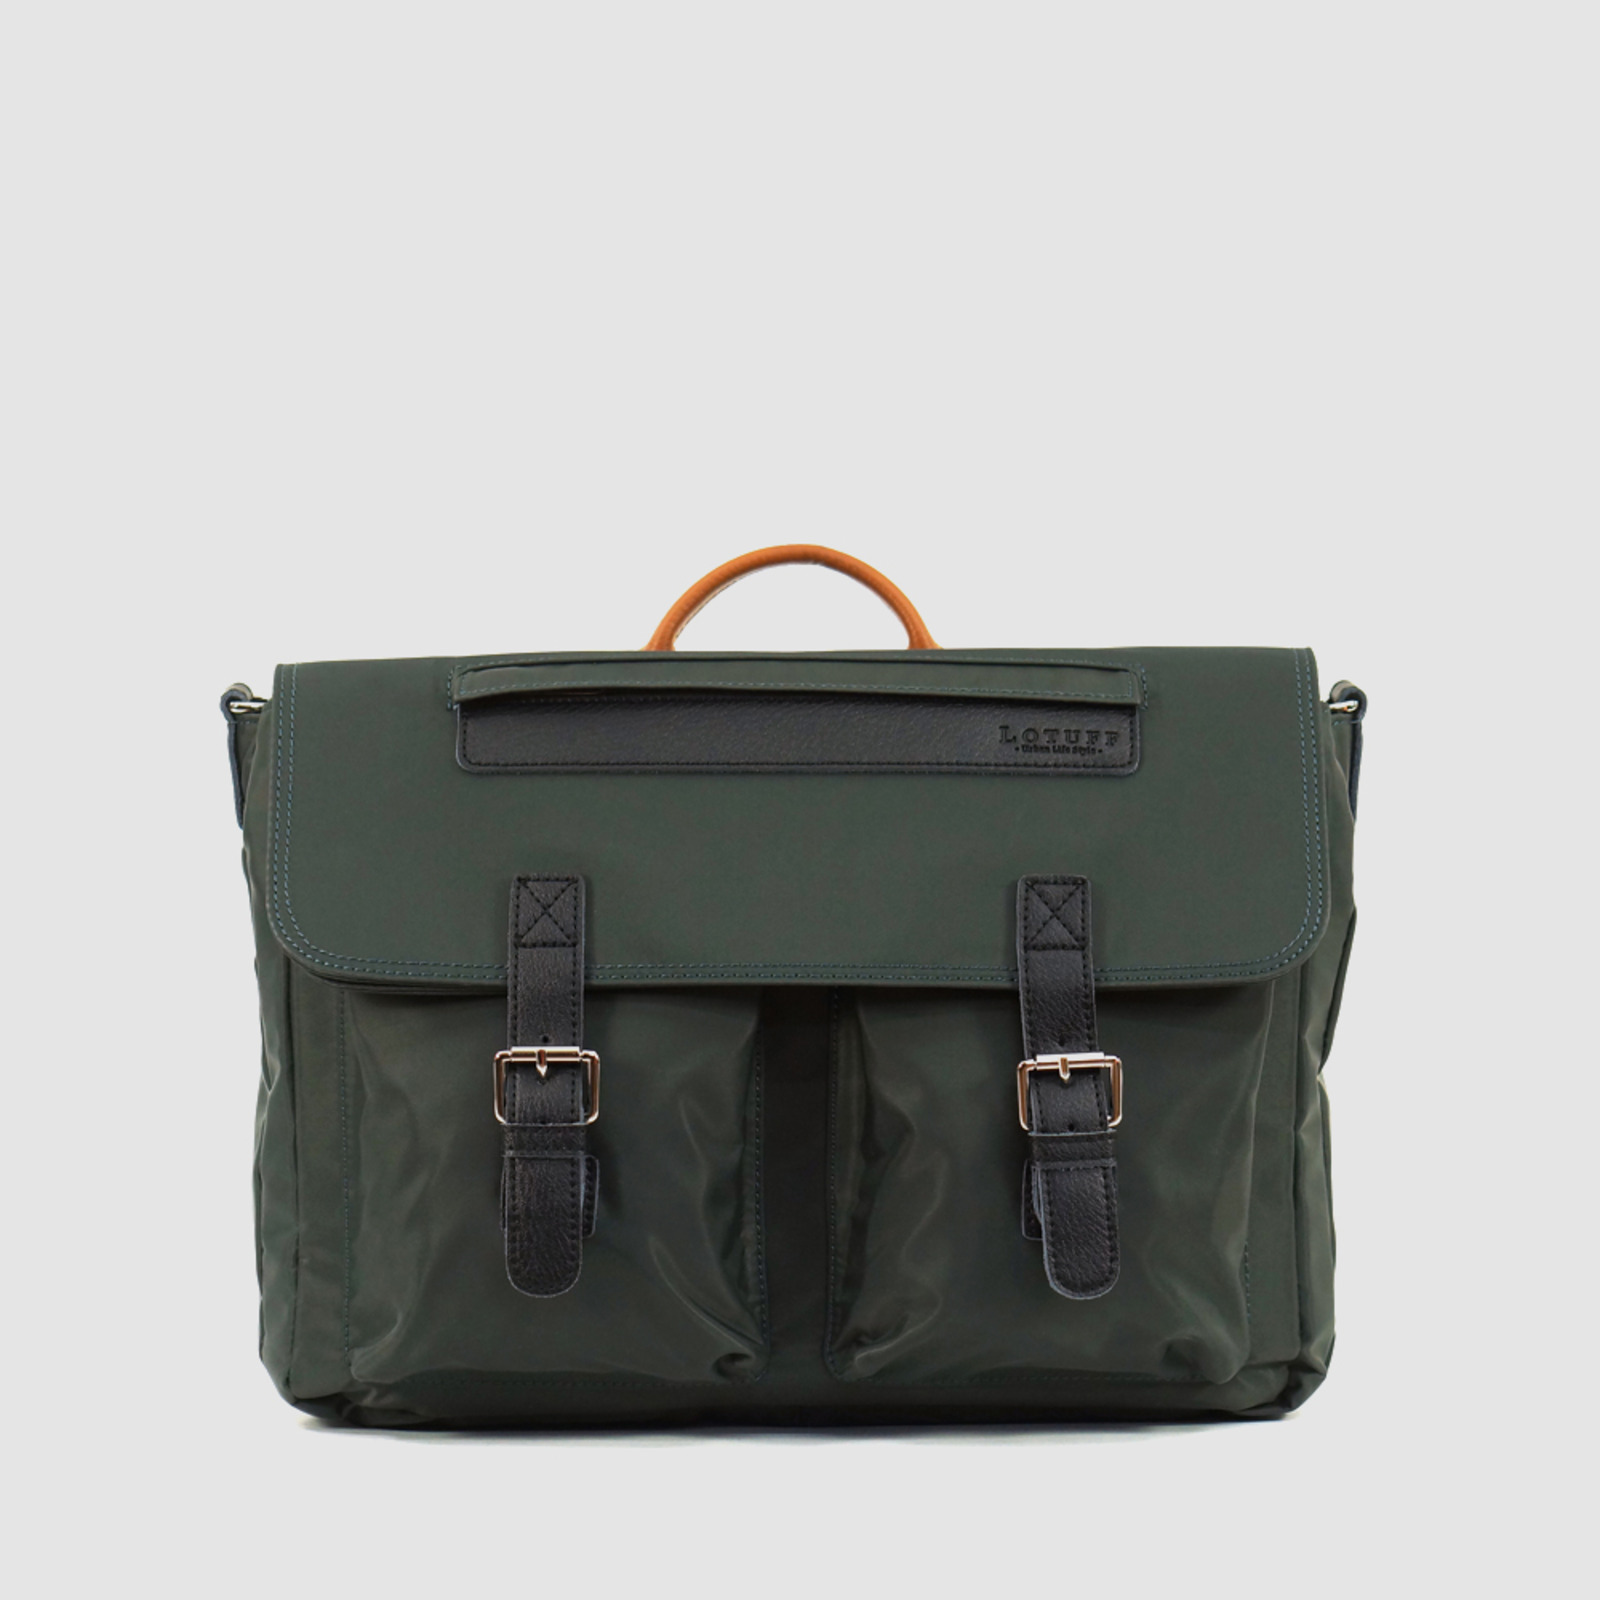 LO-3118 GG (GRAY GREEN)